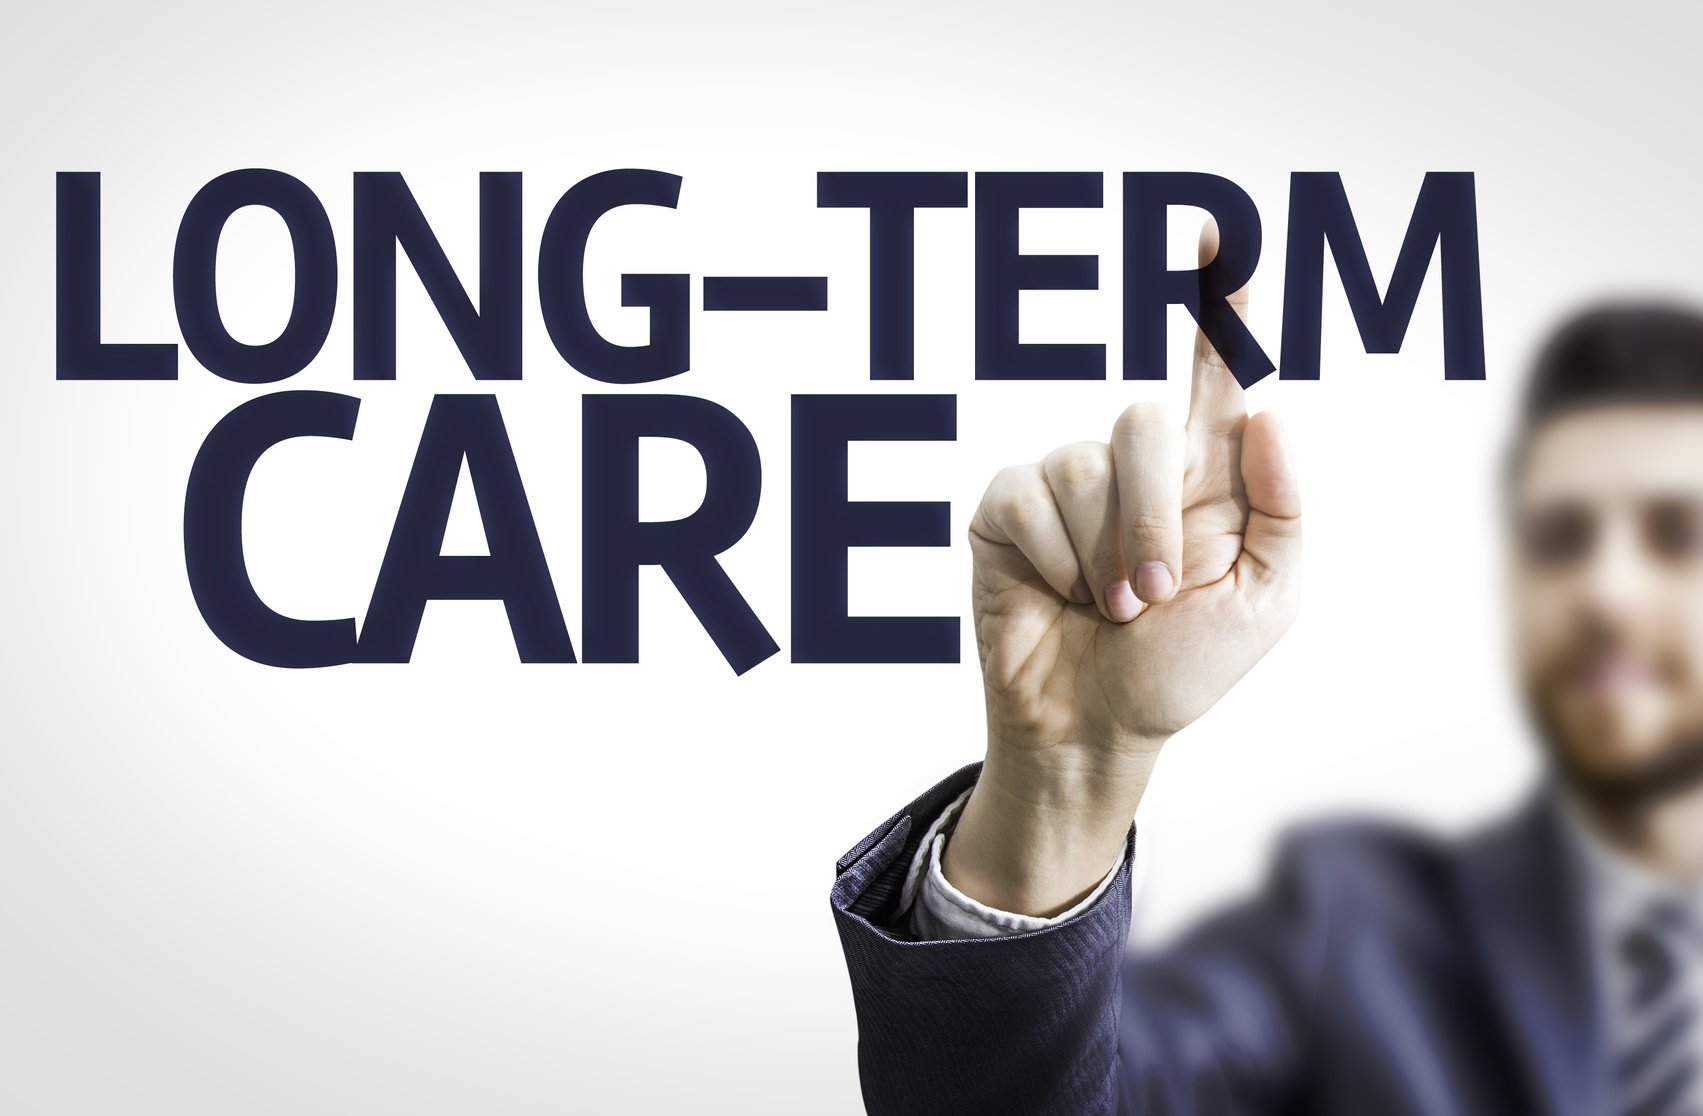 thesis on long term care Essays on long-term care and aging by ezra golberstein a dissertation submitted in partial fulfillment of the requirements for the degree of doctor of philosophy.